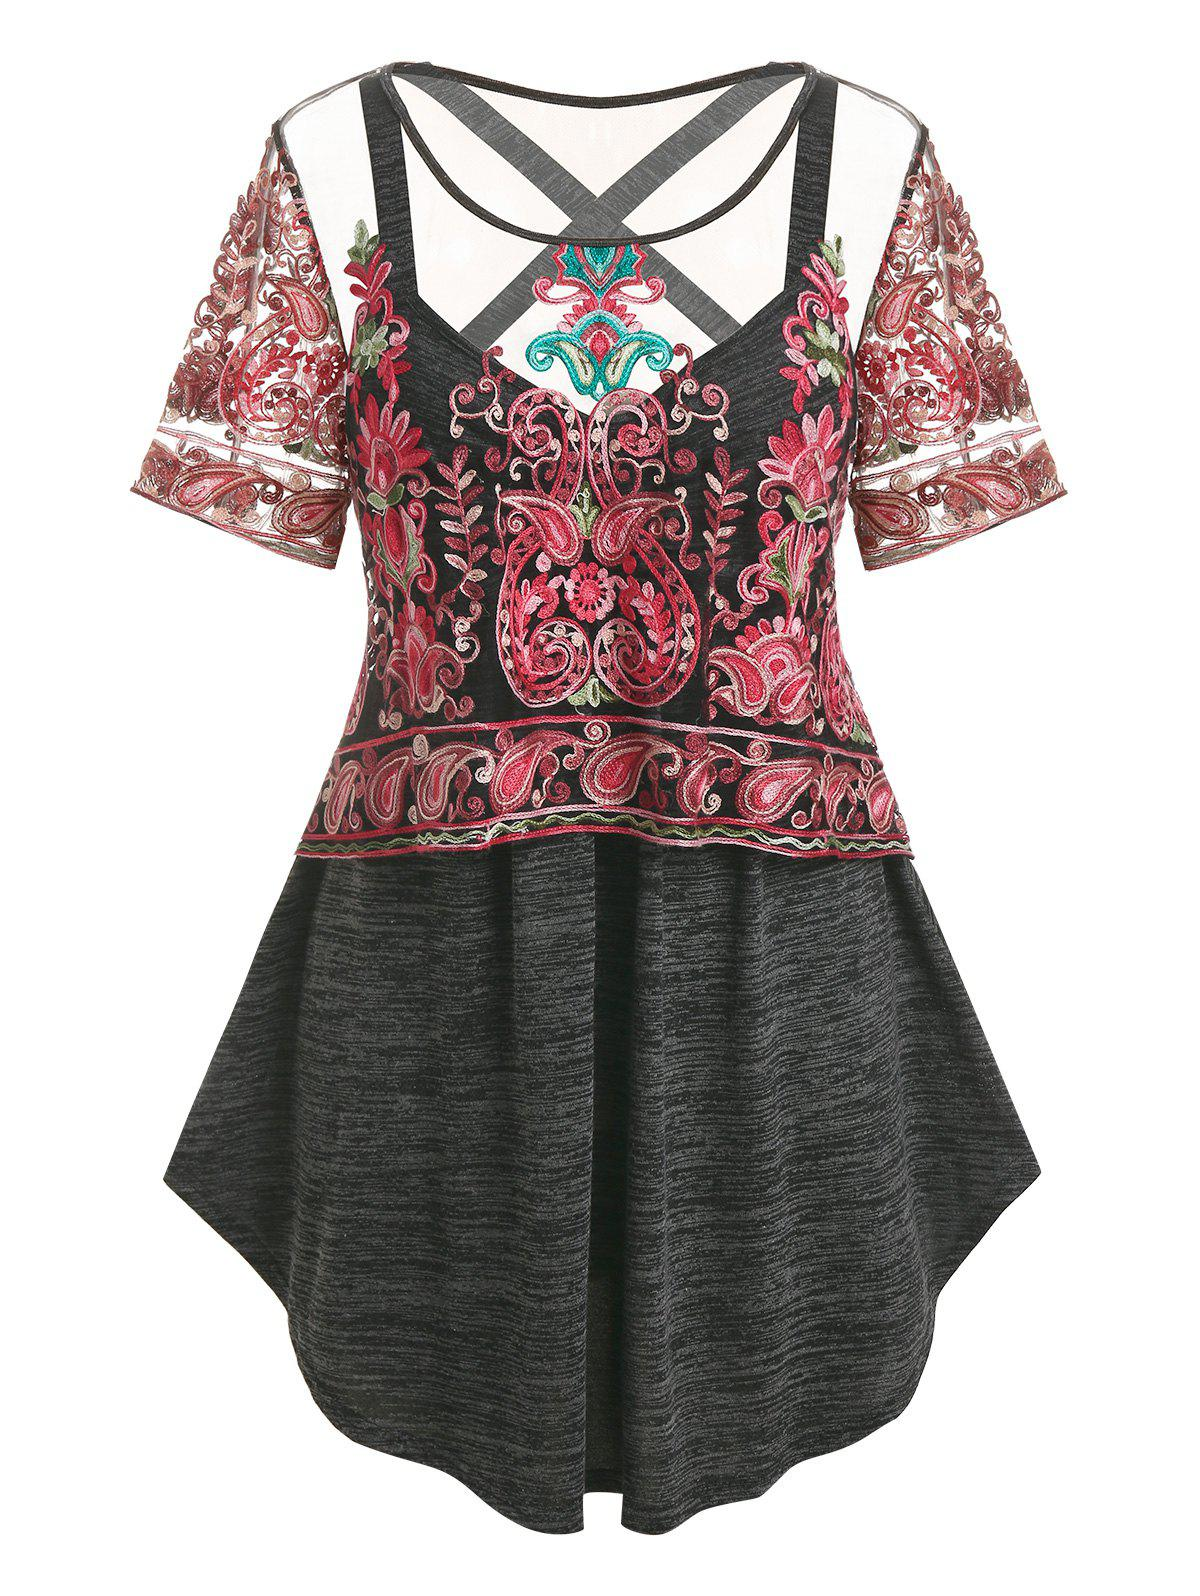 Affordable Plus Size Space Dye Crisscross Tank Top and Embroidered Mesh Top Set